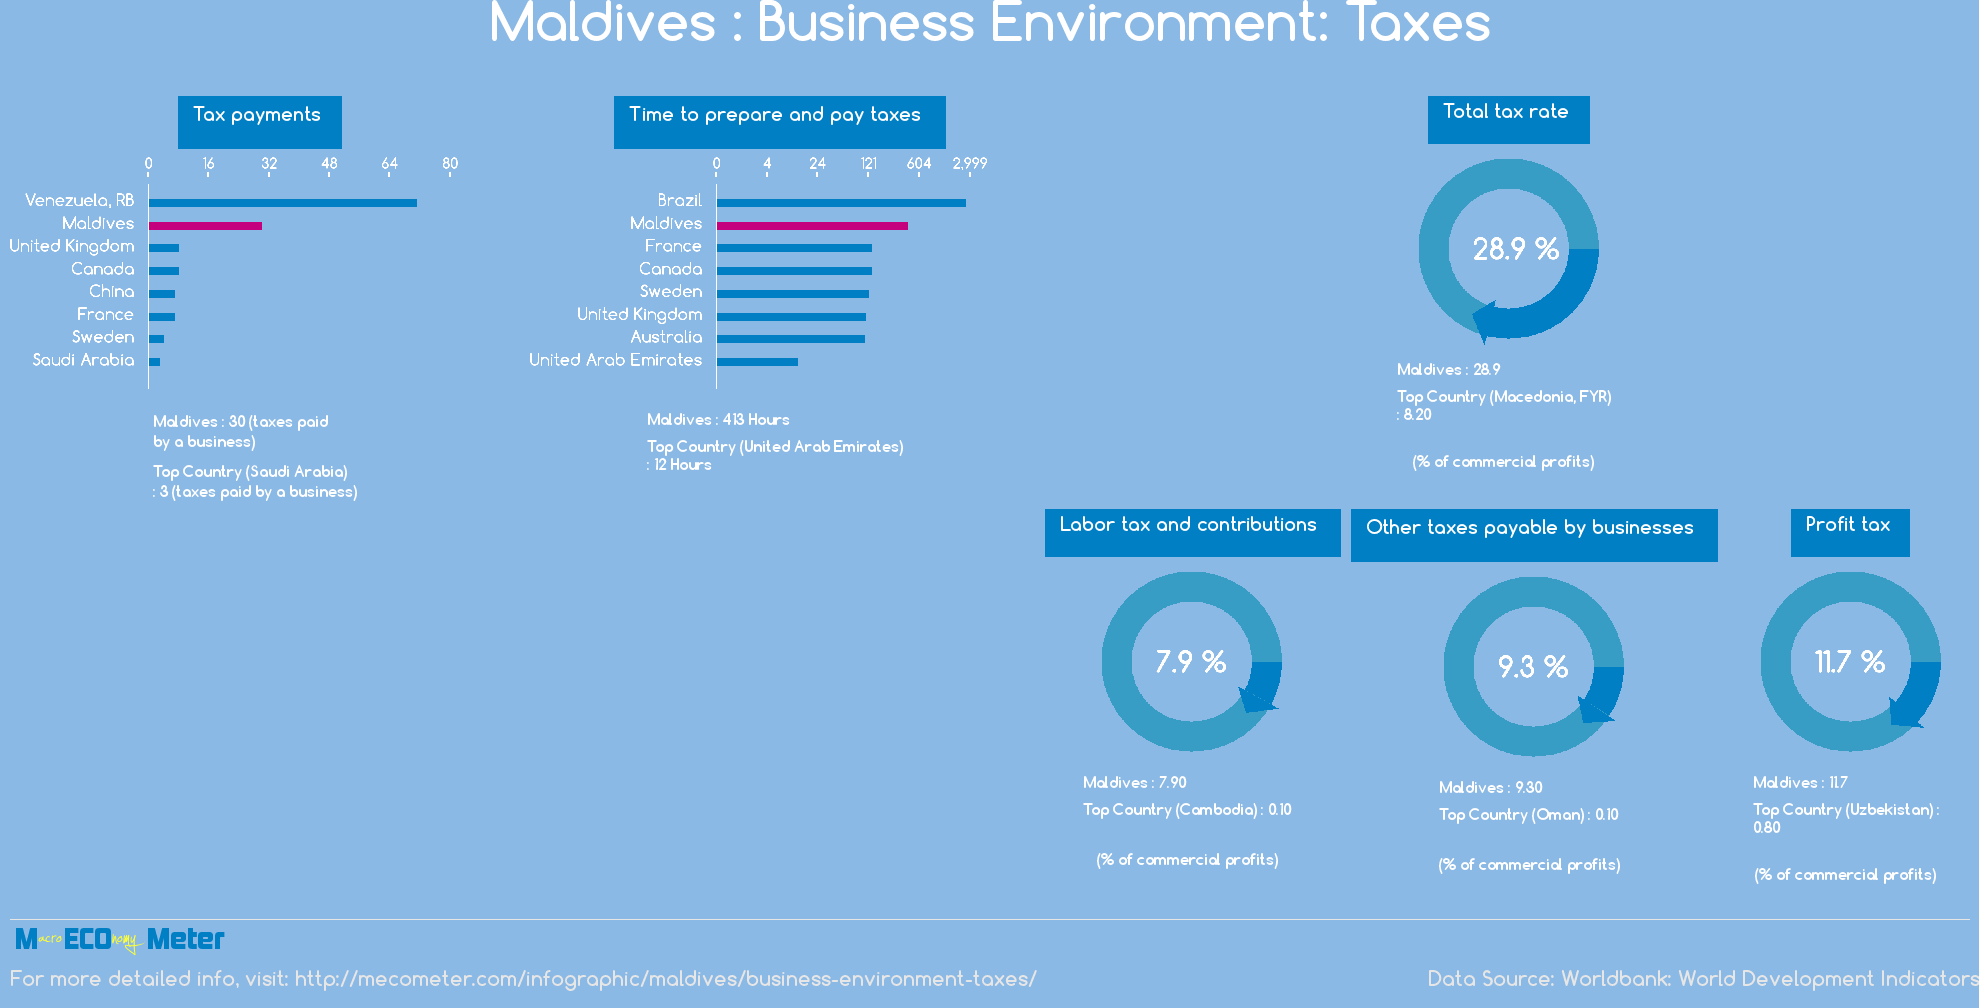 Maldives : Business Environment: Taxes